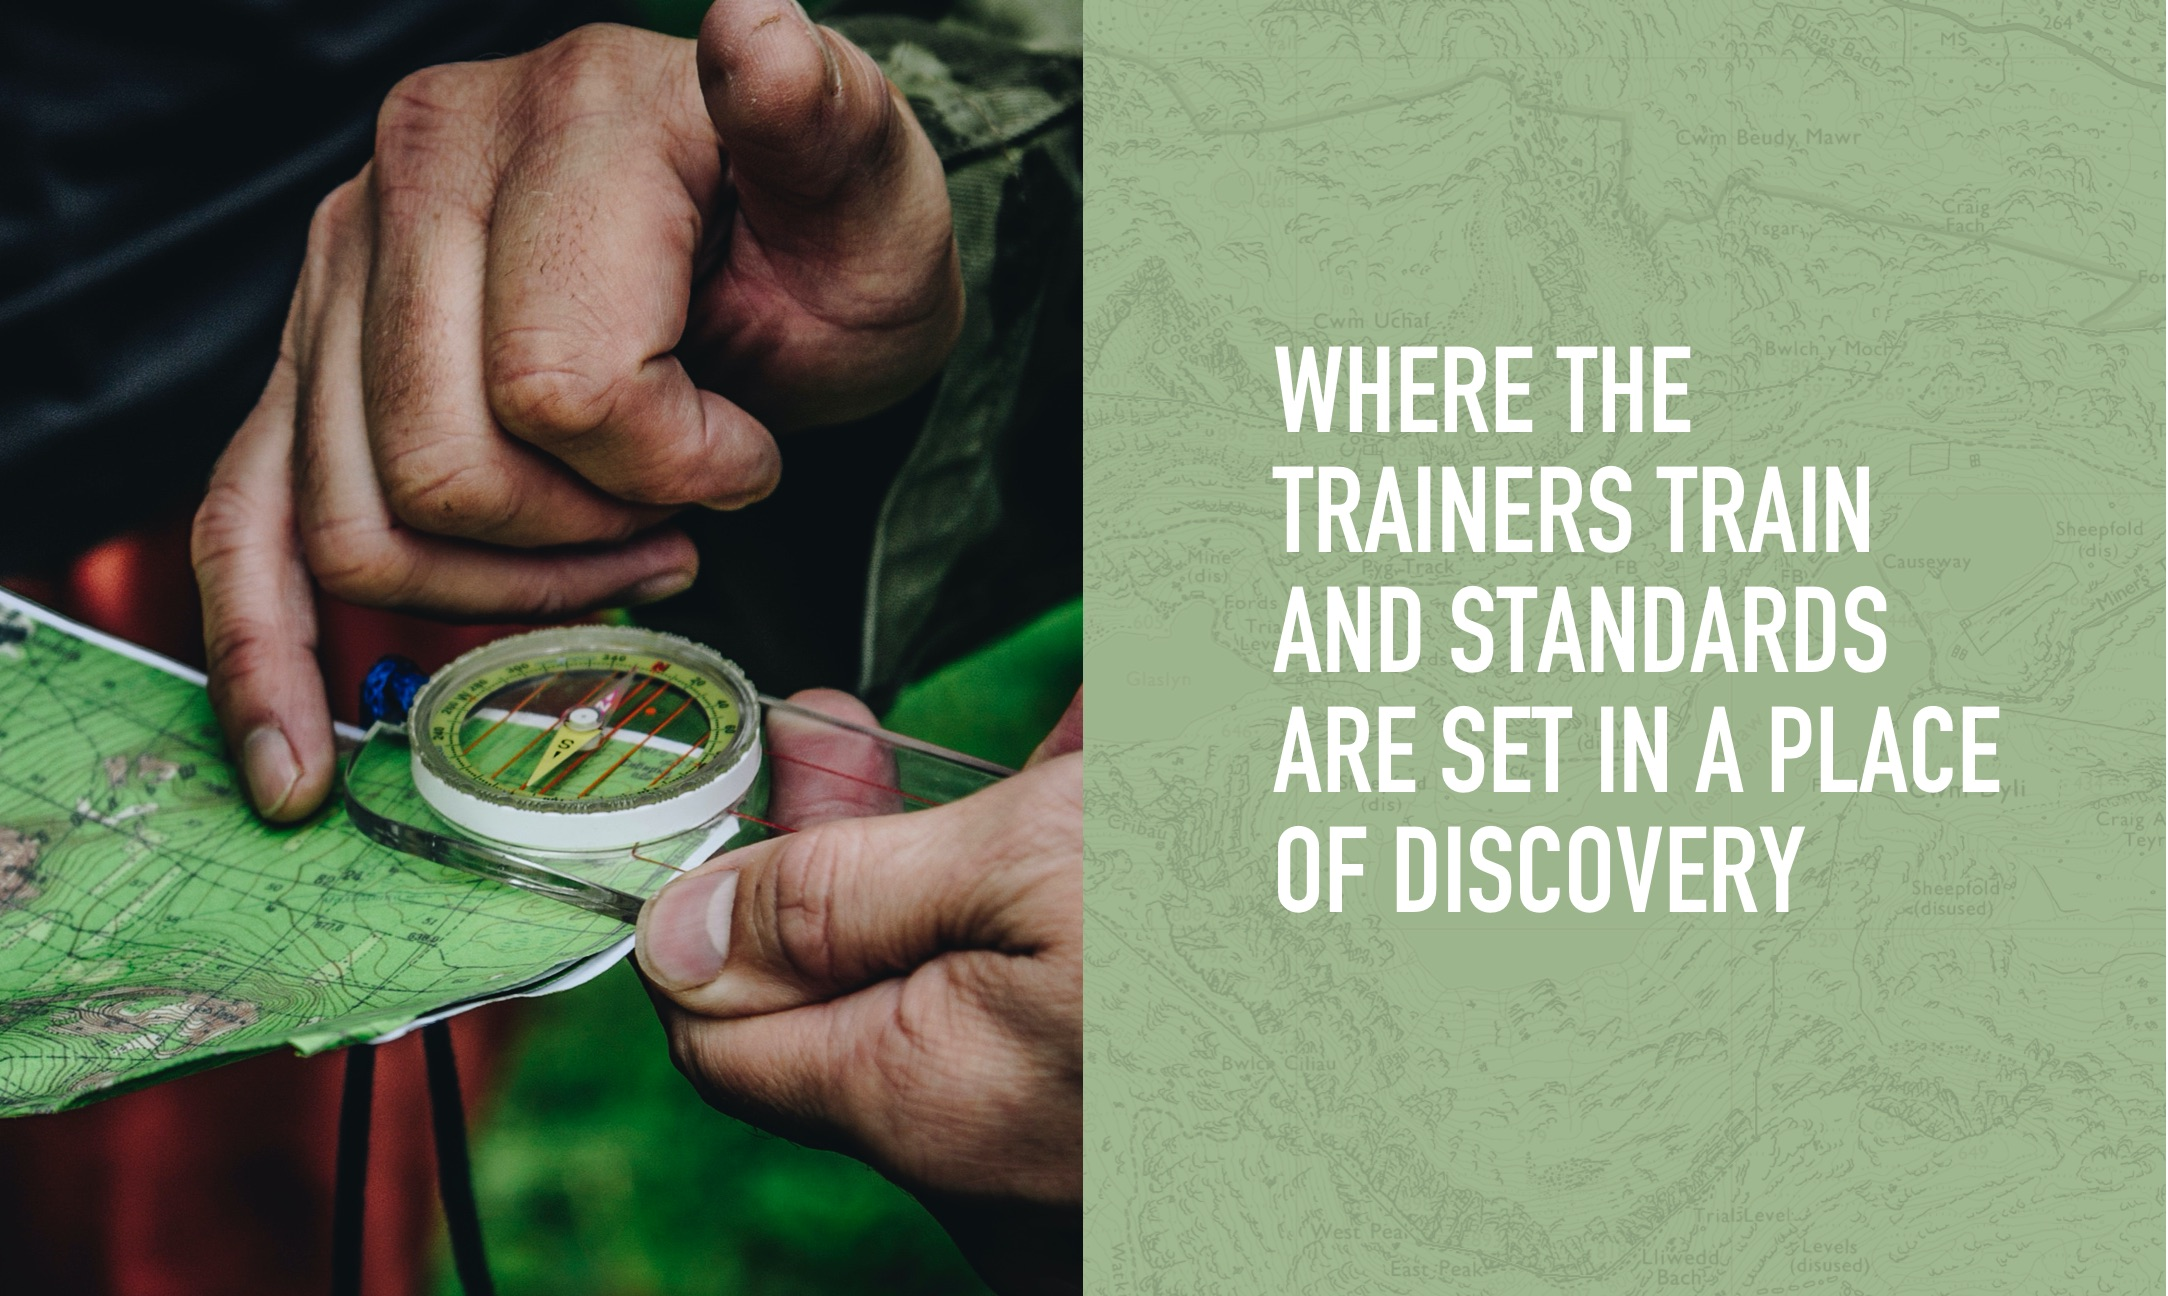 Where the trainers train and standards are set in a place of discovery